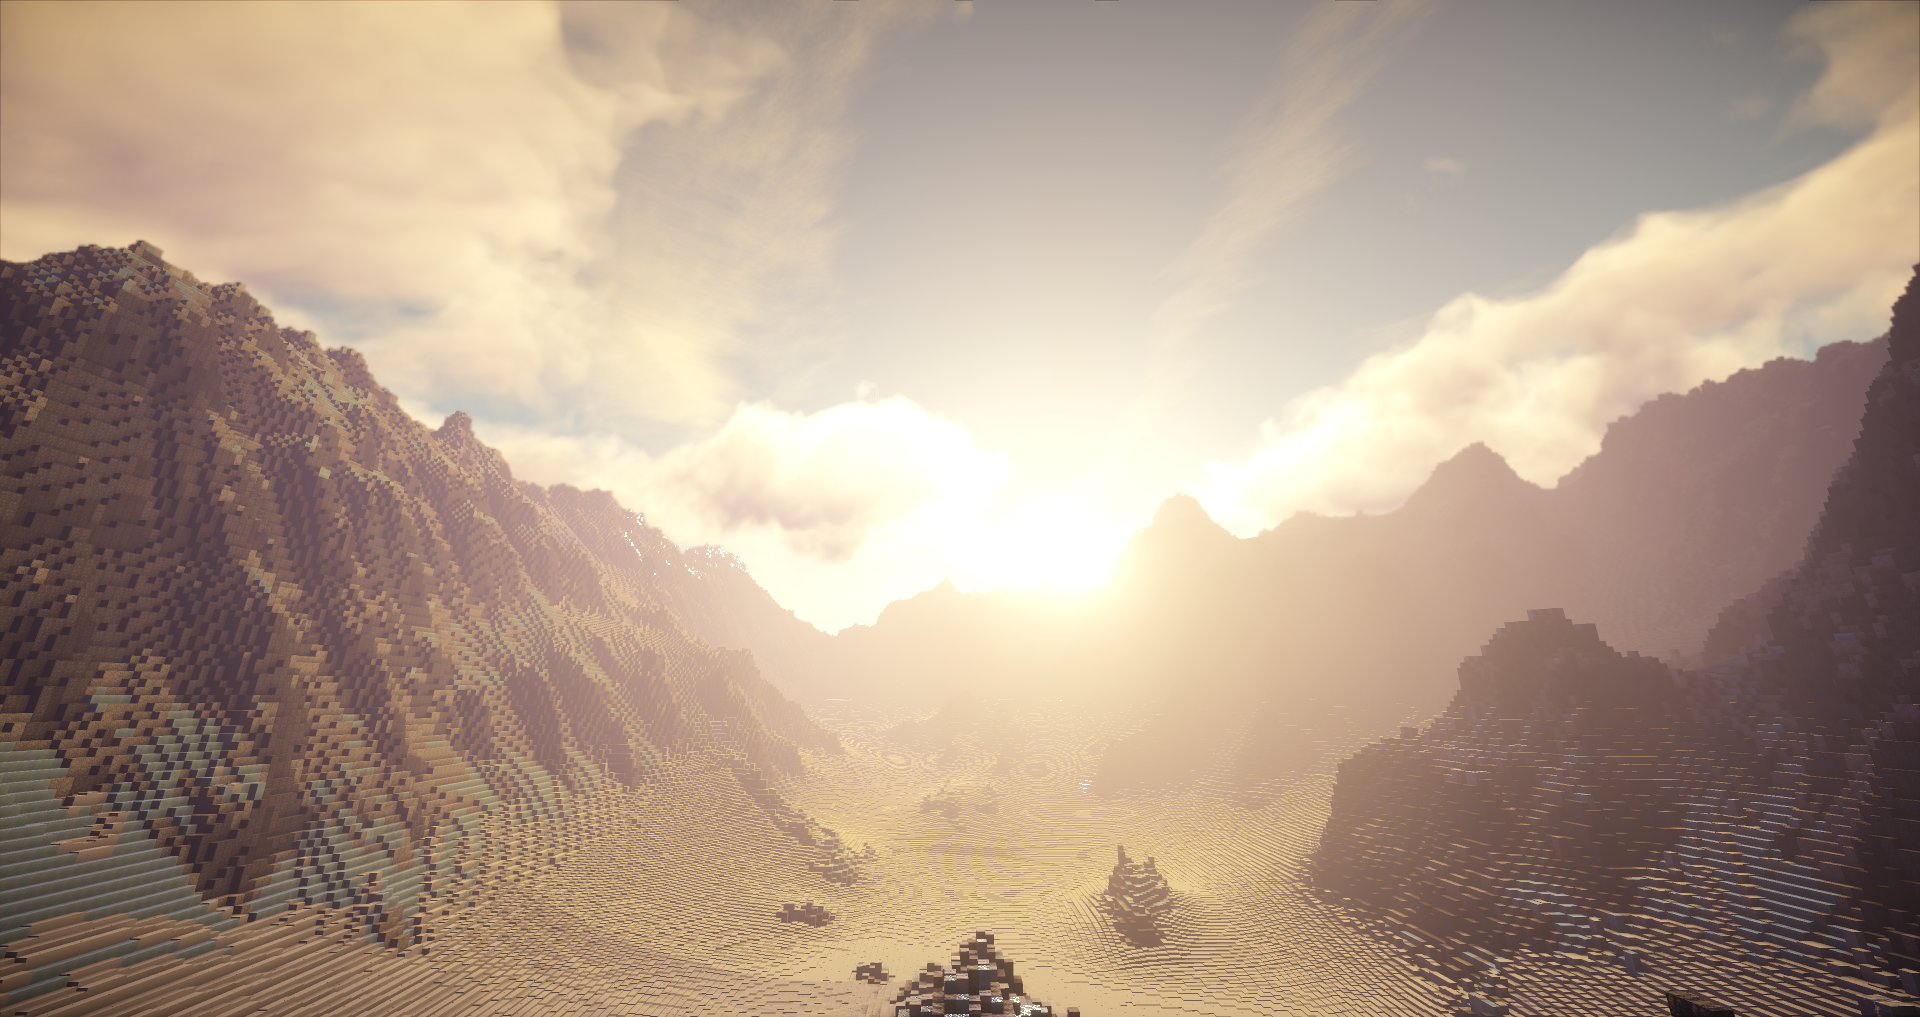 1 8 9] Continuum Shaders Mod Download | Minecraft Forum